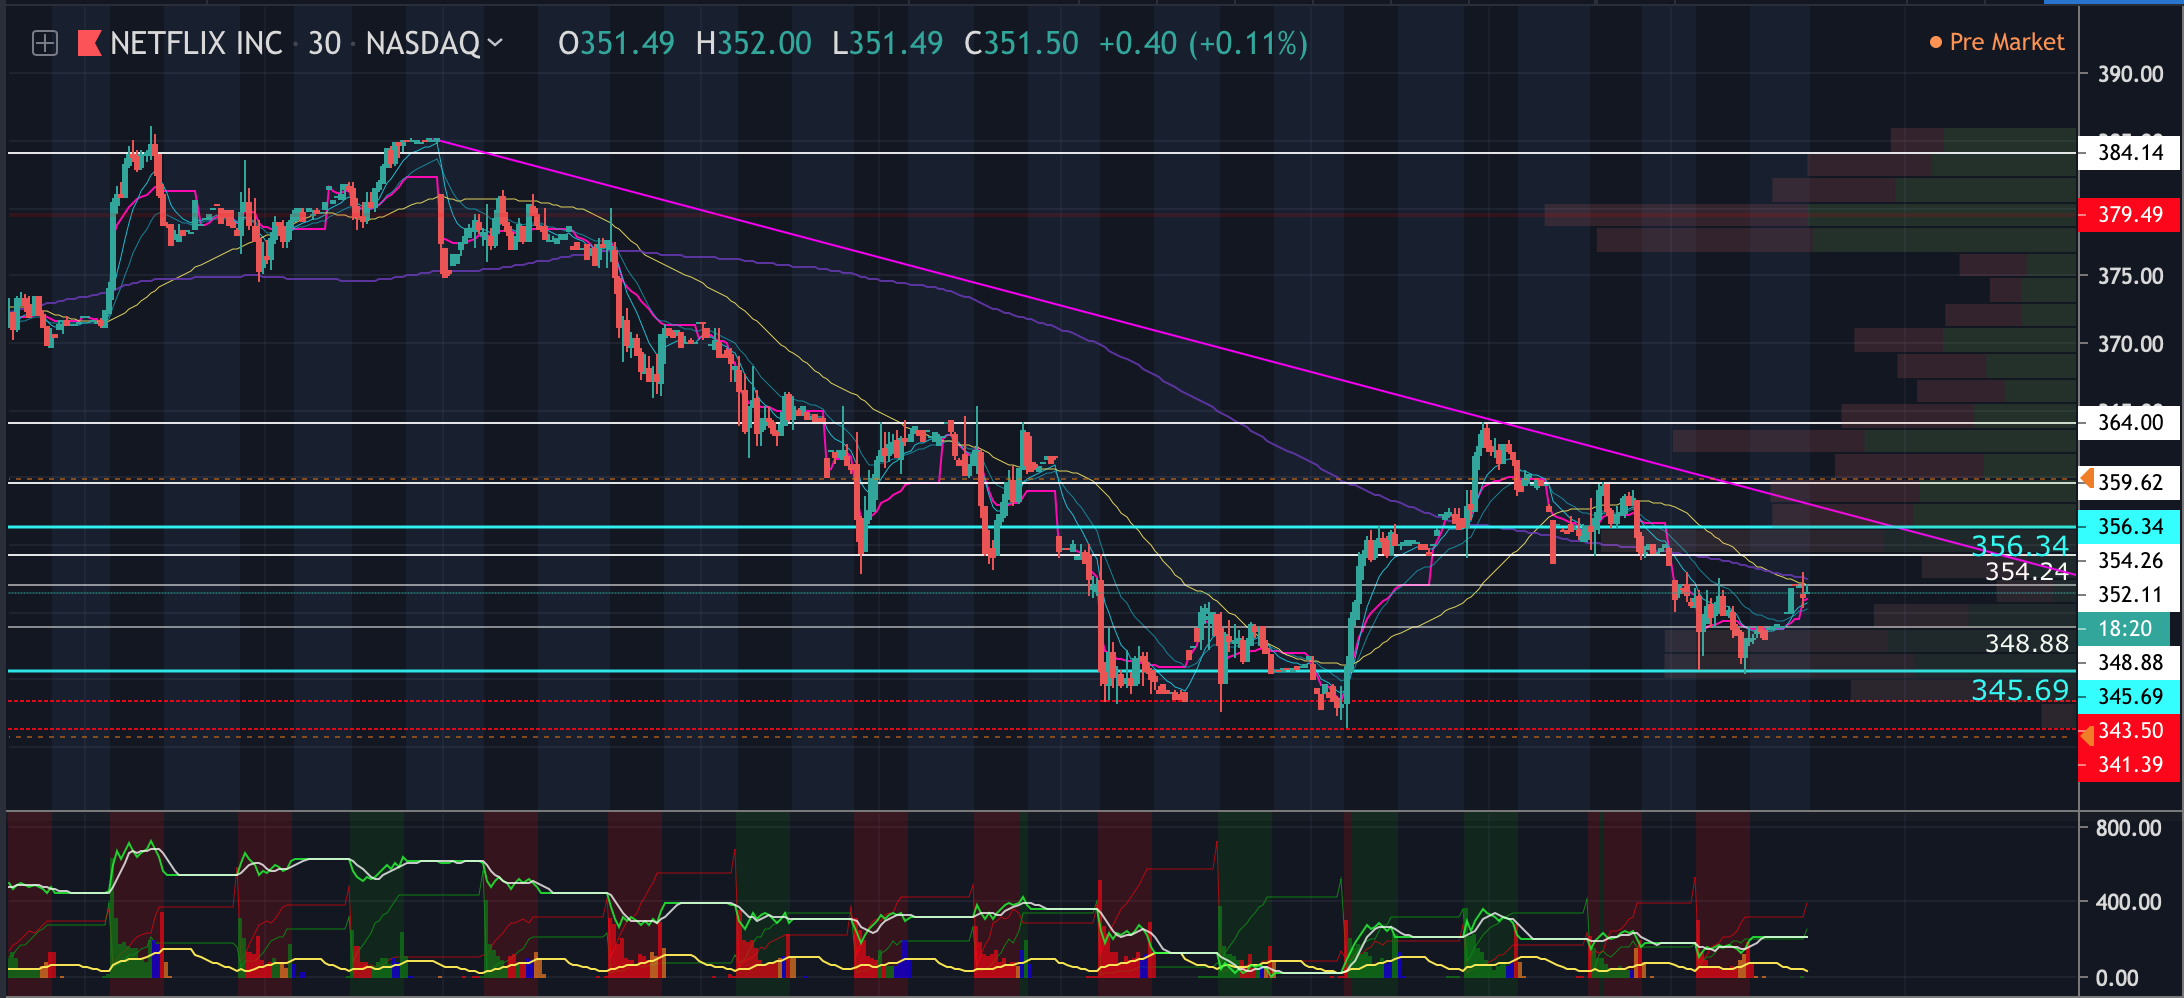 30 minute chart shows possible down-trend forming